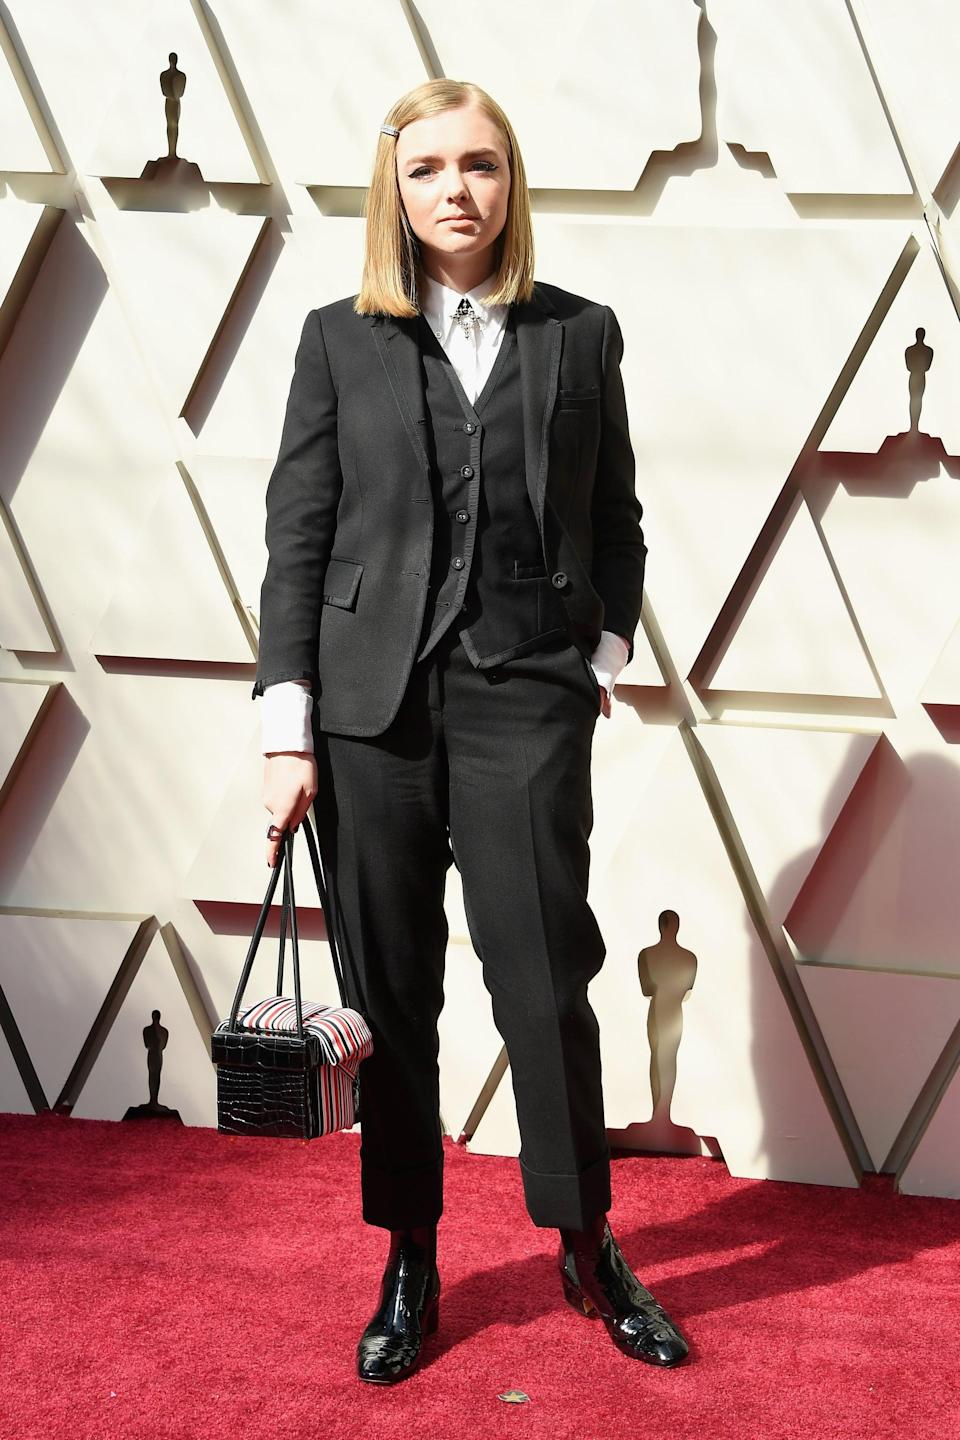 <p>Wearing a three-piece suit.</p>